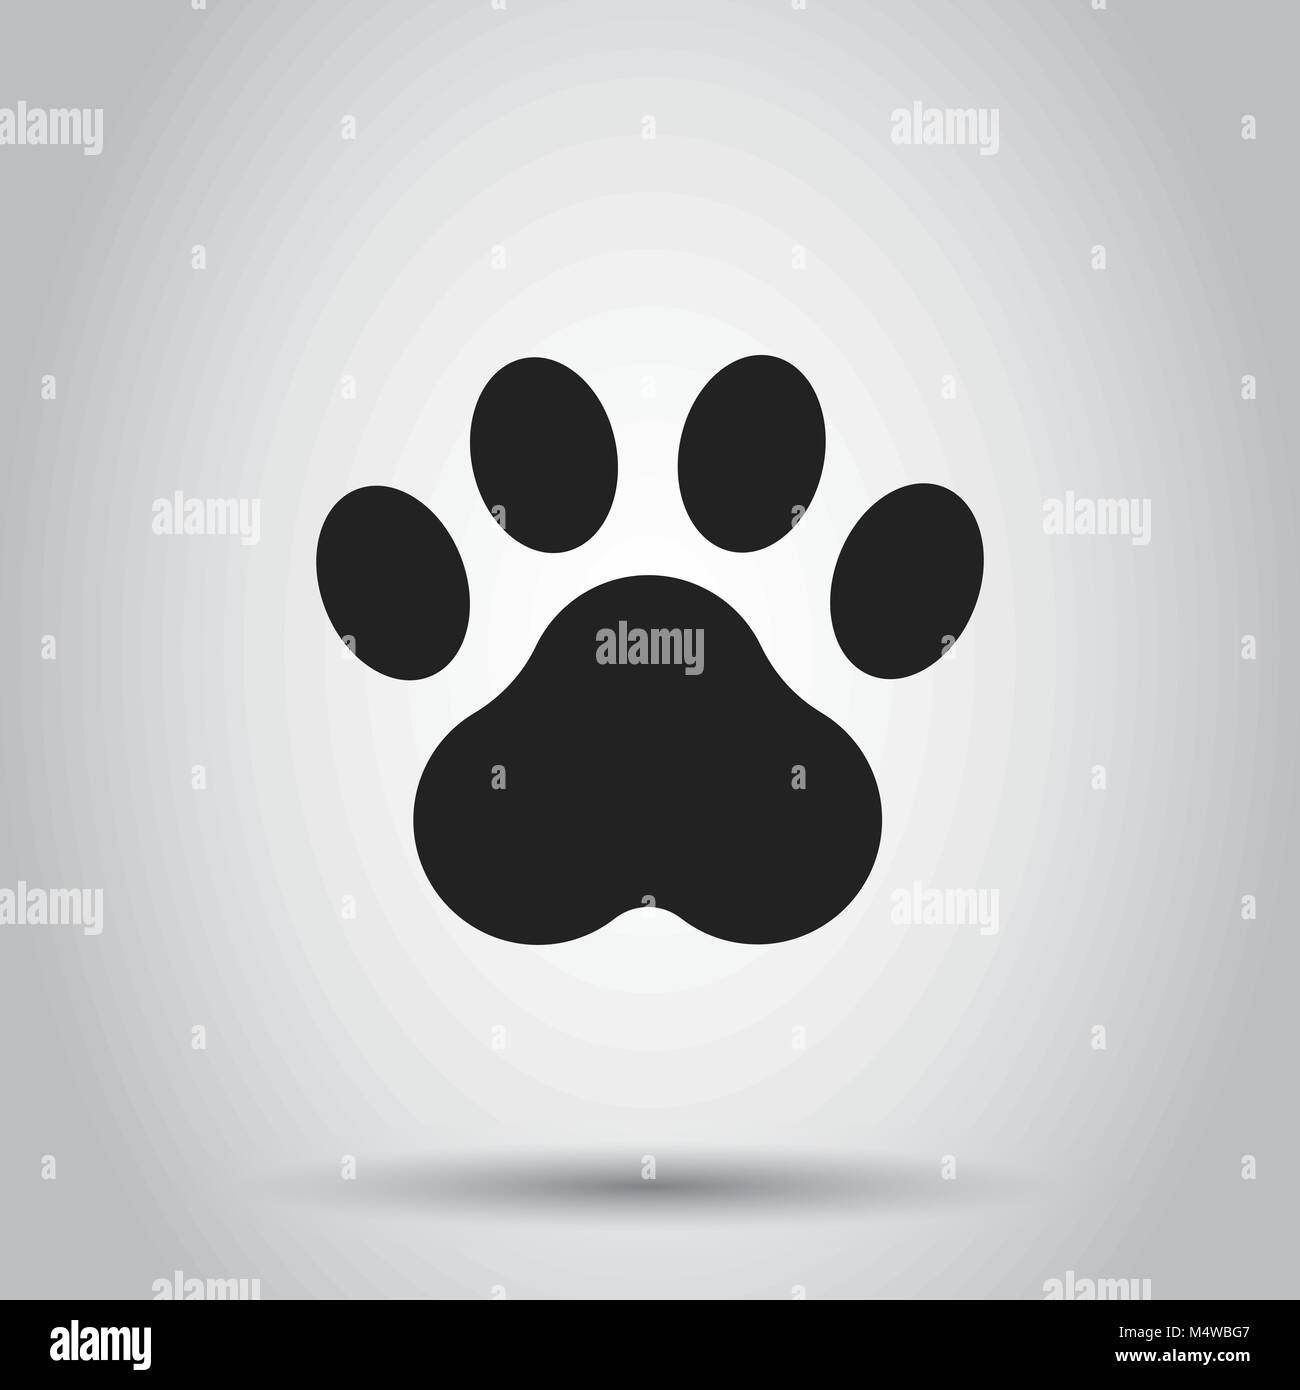 b467c7a67472 Paw print animal icon. Vector illustration on isolated background. Business  concept dog or cat pawprint pictogram.